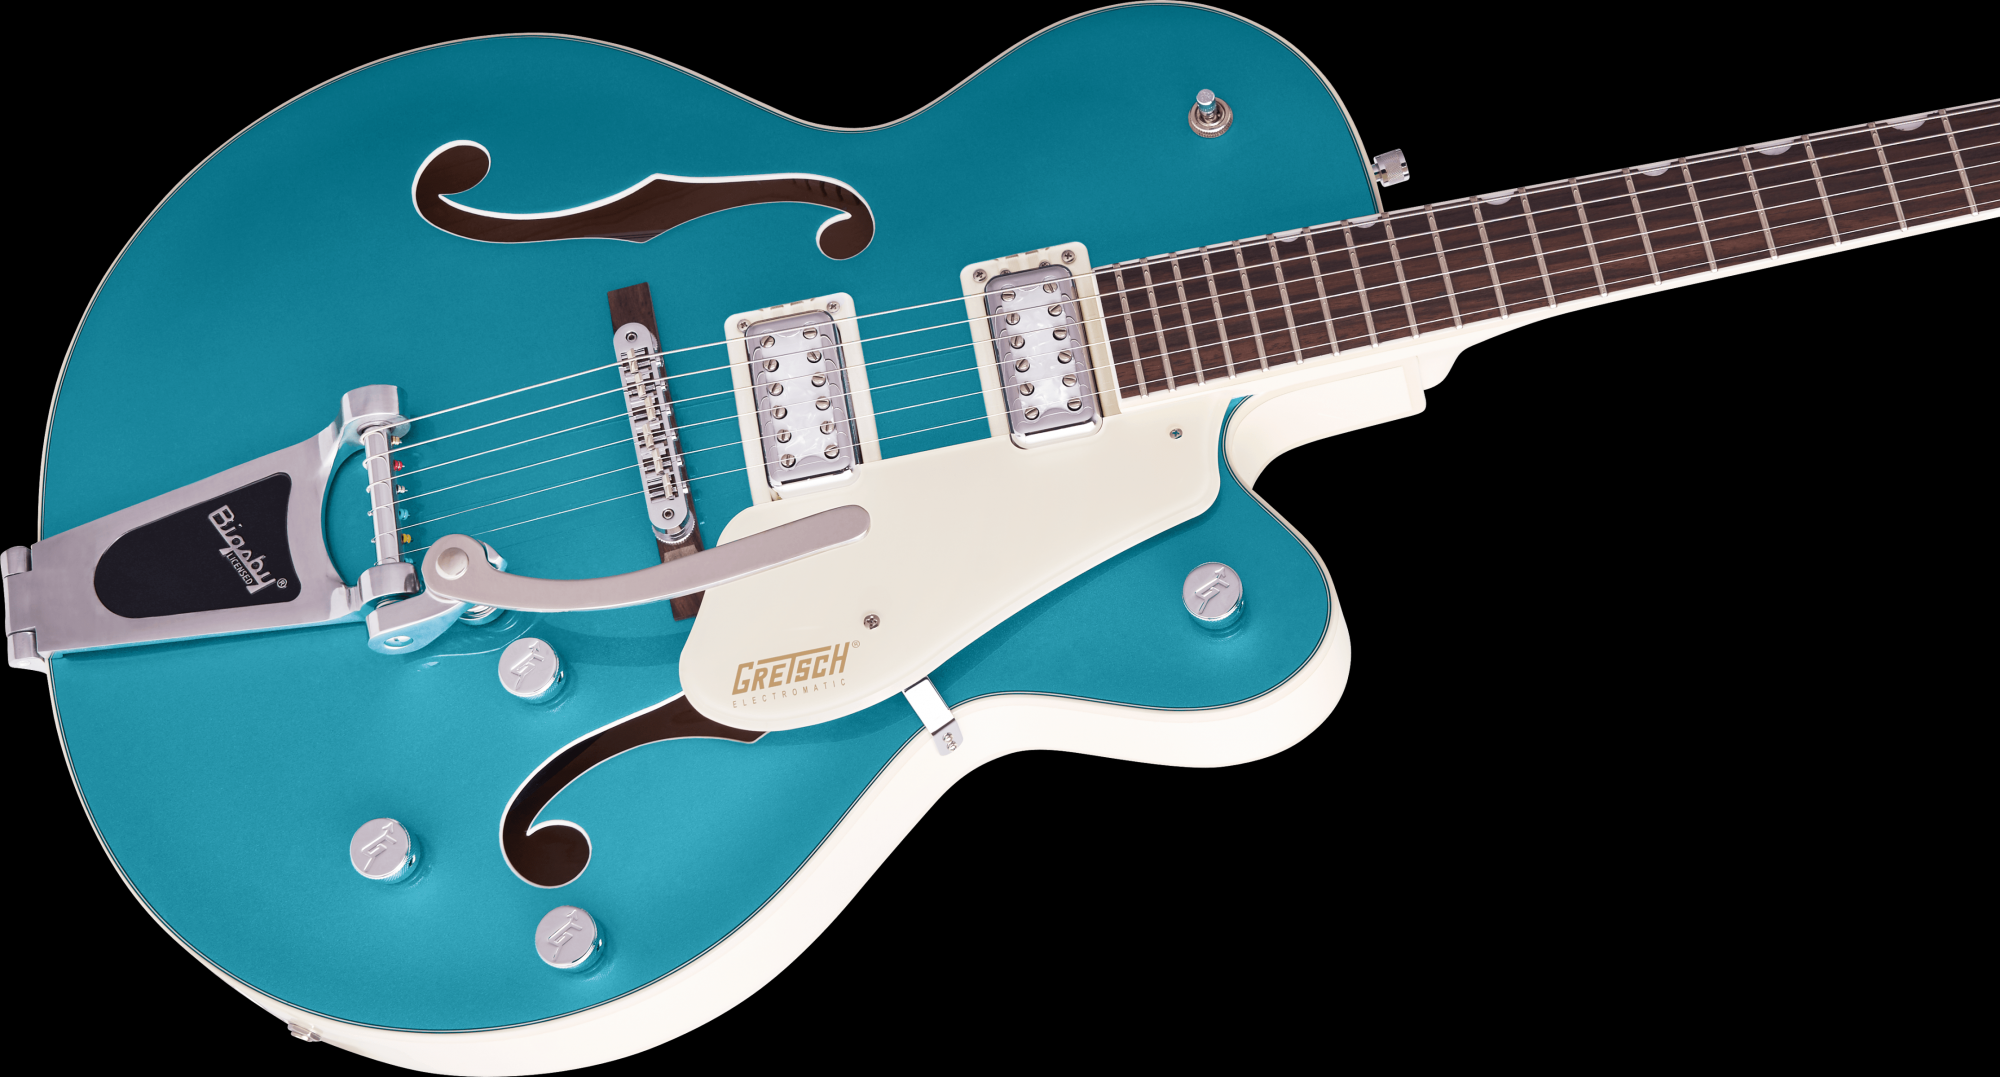 Gretsch G5410T Limited Edition Electromatic Tri-Five Hollow Body Single-Cut with Bigsby - Two-Tone Ocean Turquoise/Vintage White